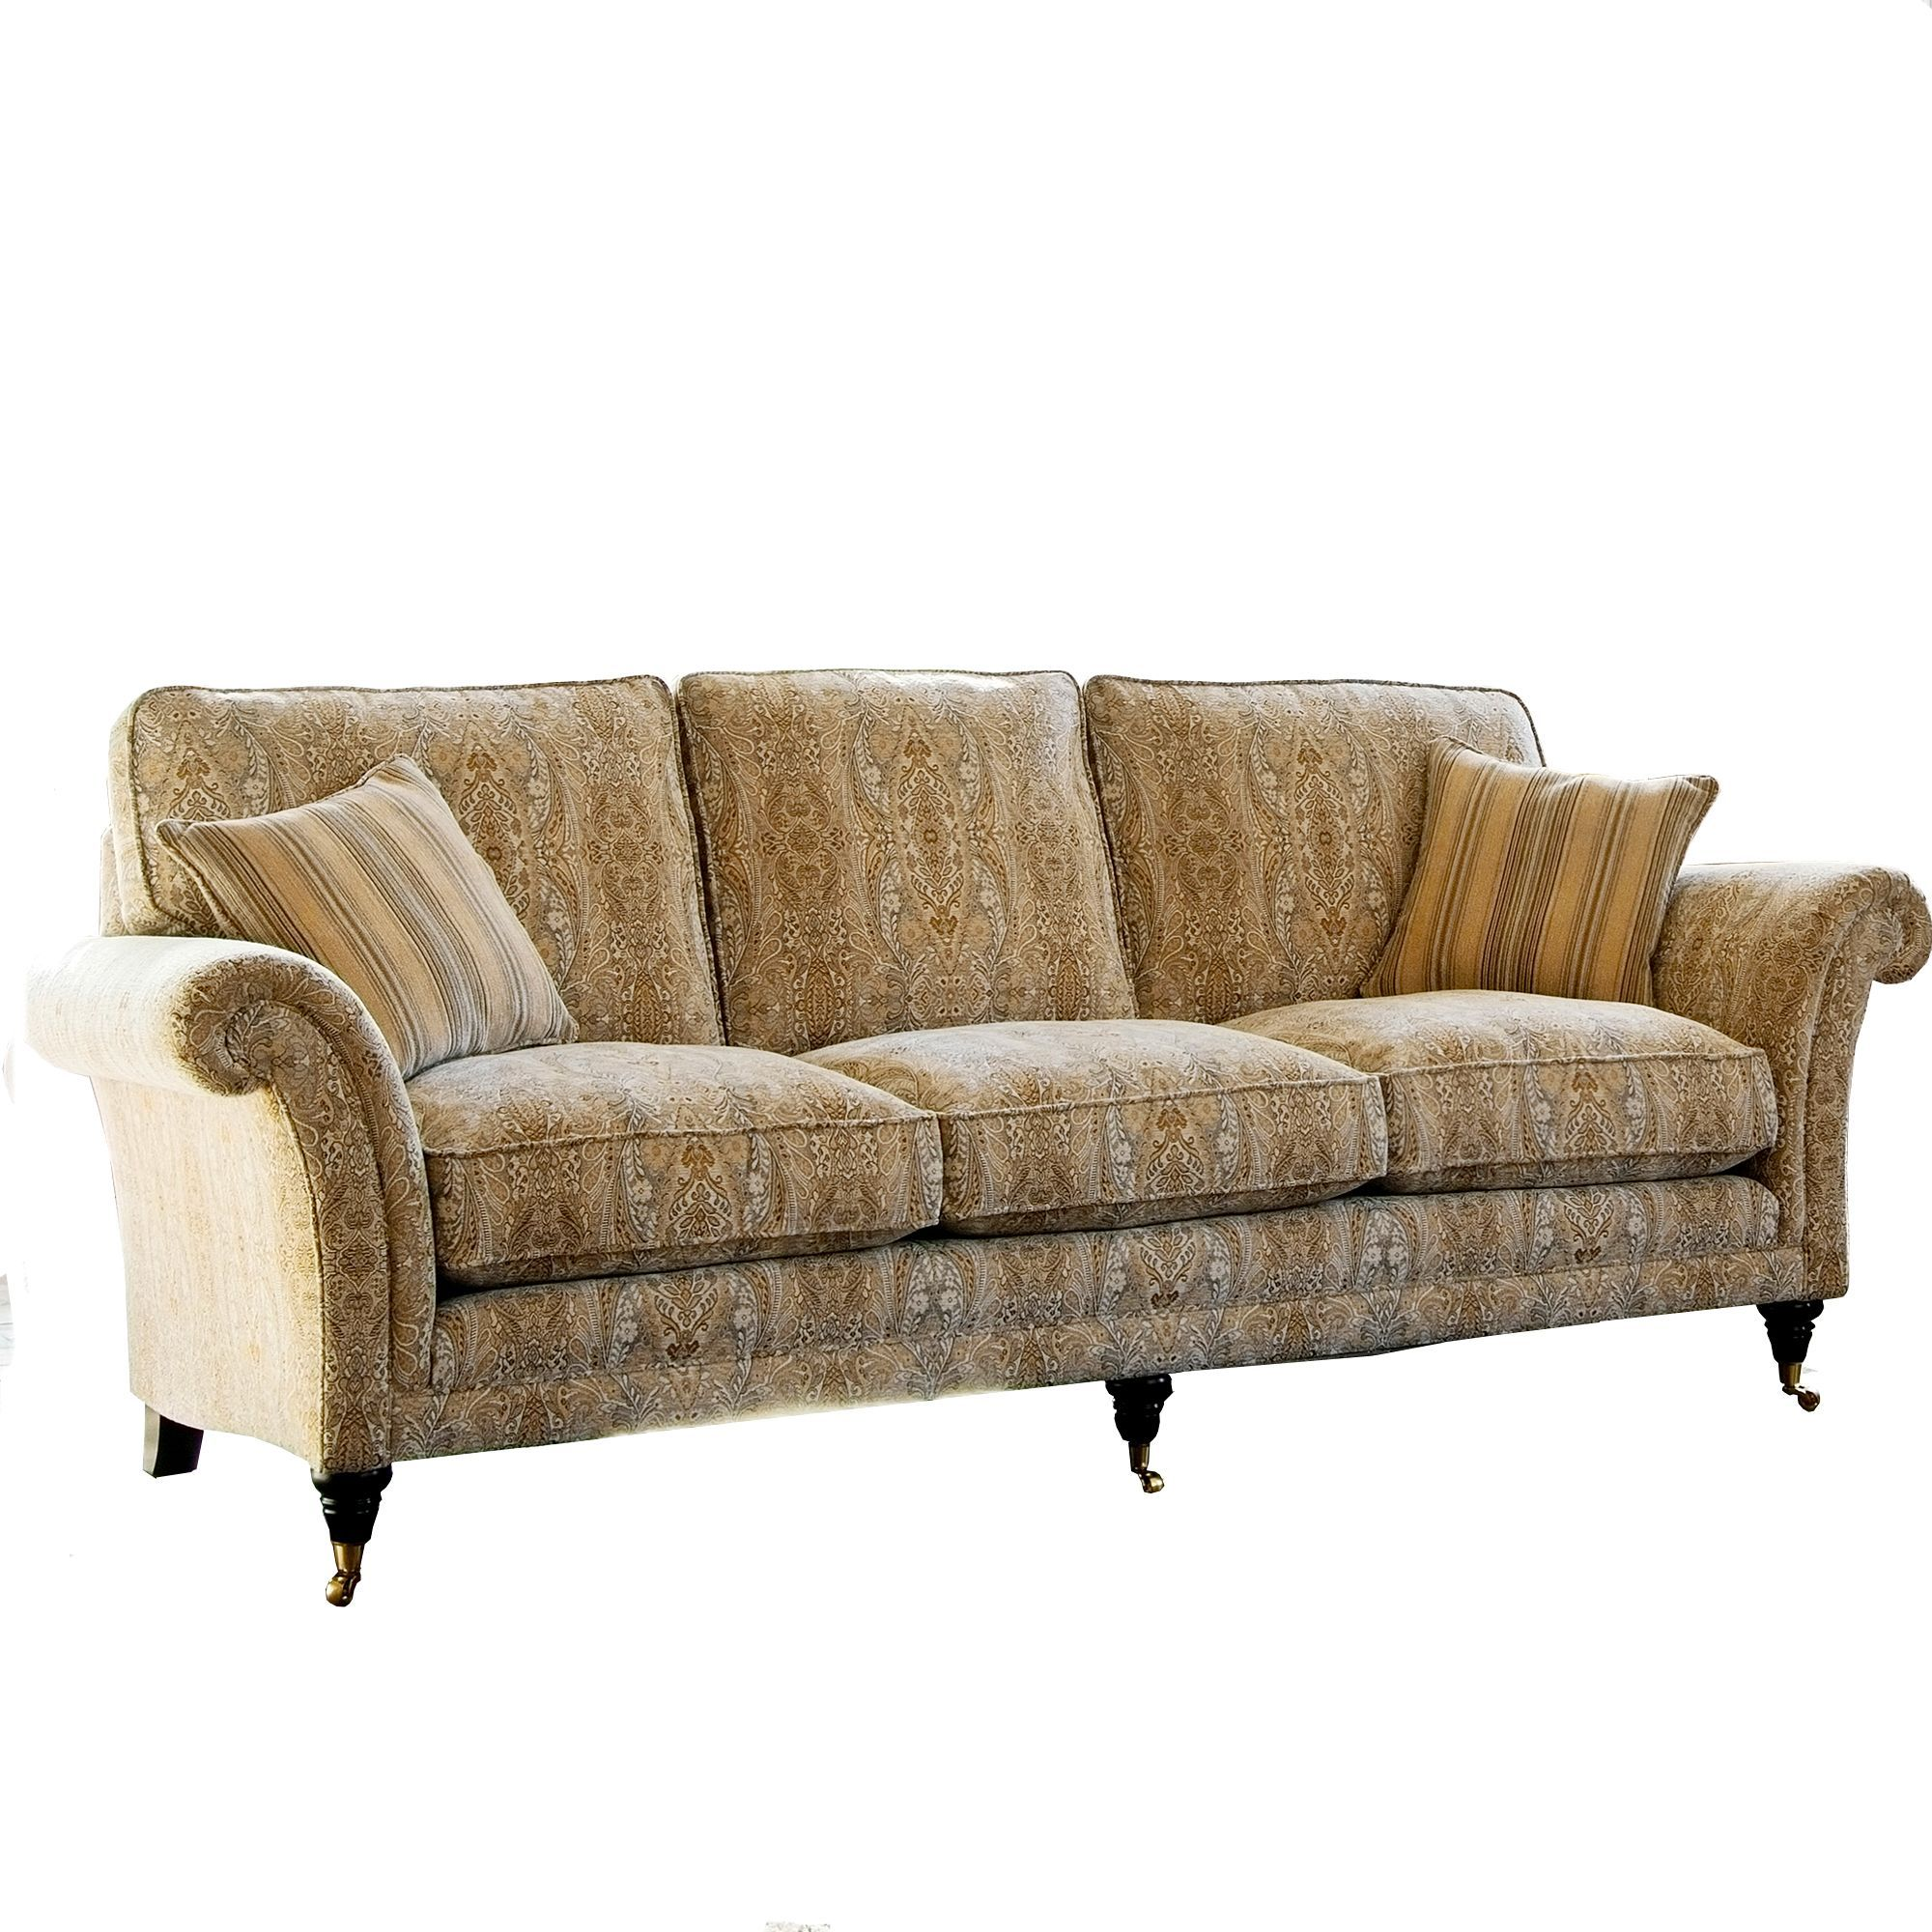 Knoll Sofa Parker Knoll Burghley Grand Sofa